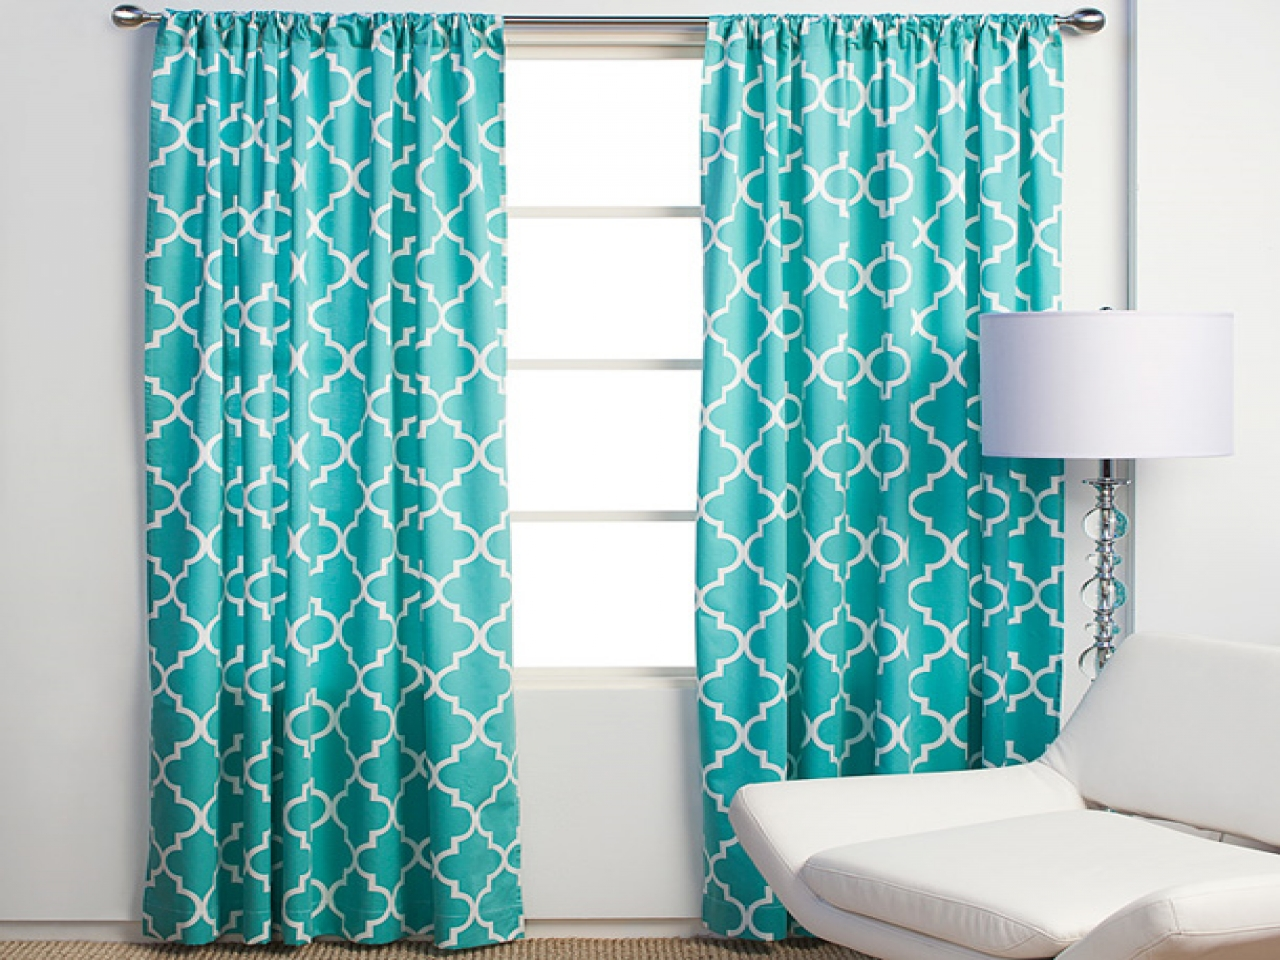 turquoise-and-gray-curtains-turquoise-and-green-shower-curtain-6a50b5c56cfb8cc2